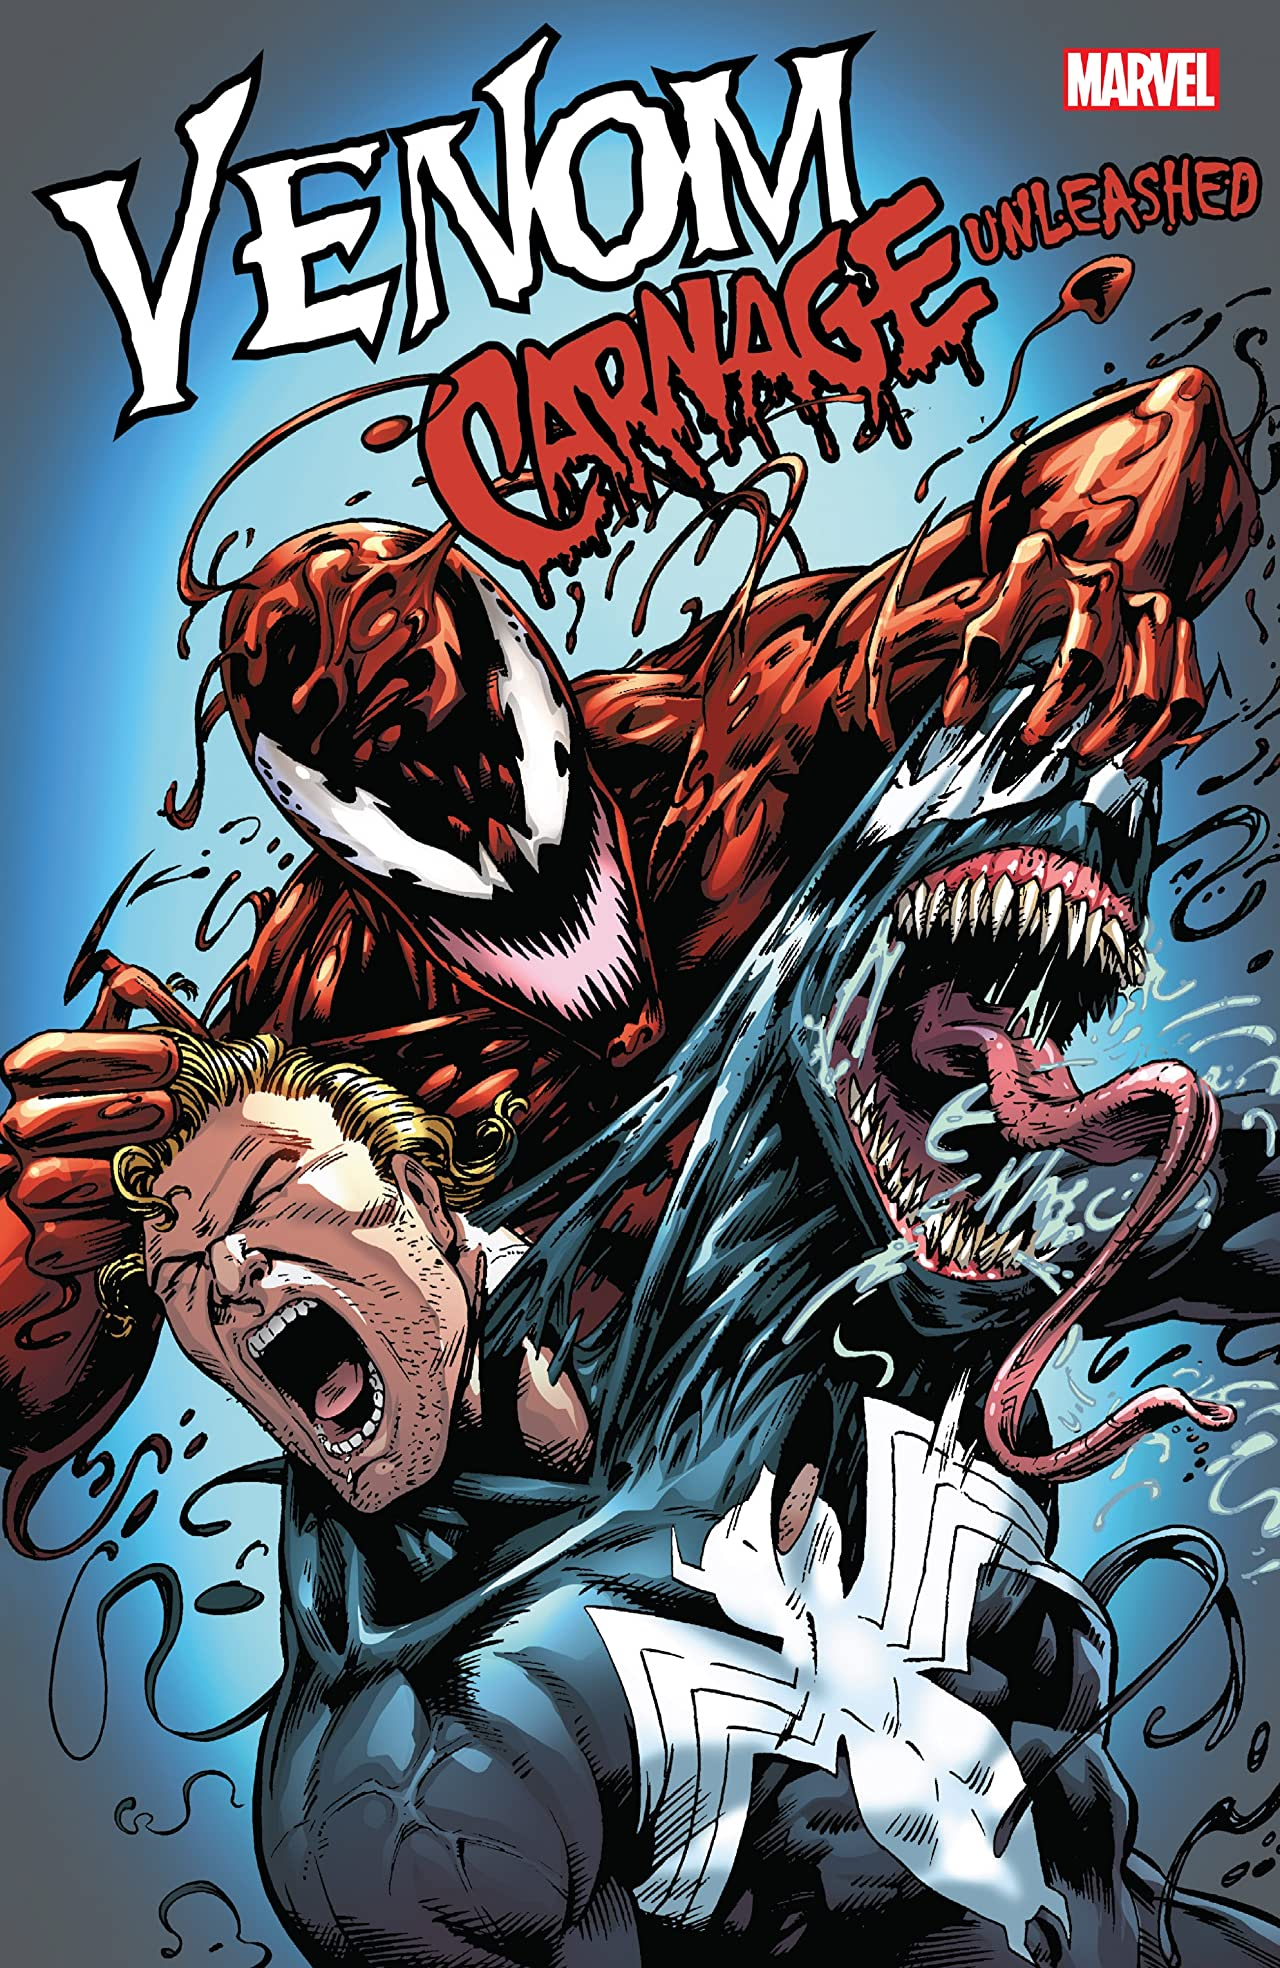 Venom: Carnage Unleashed - Comics by comiXology